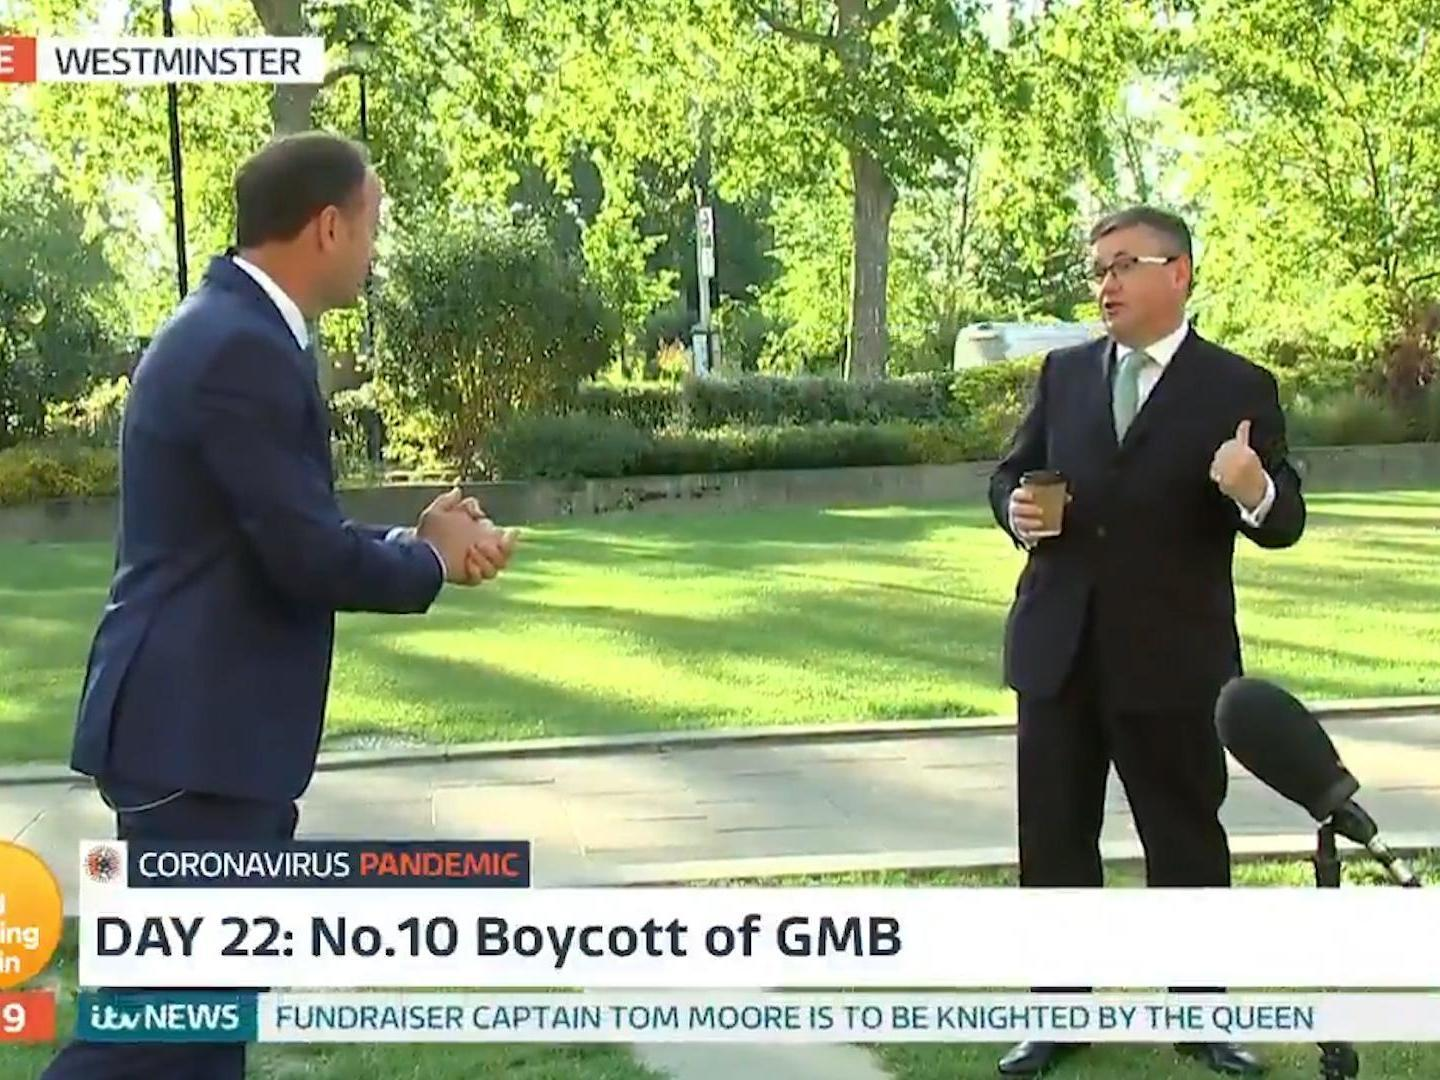 Government minister confronted on air by GMB reporter over cabinet refusing to appear on show